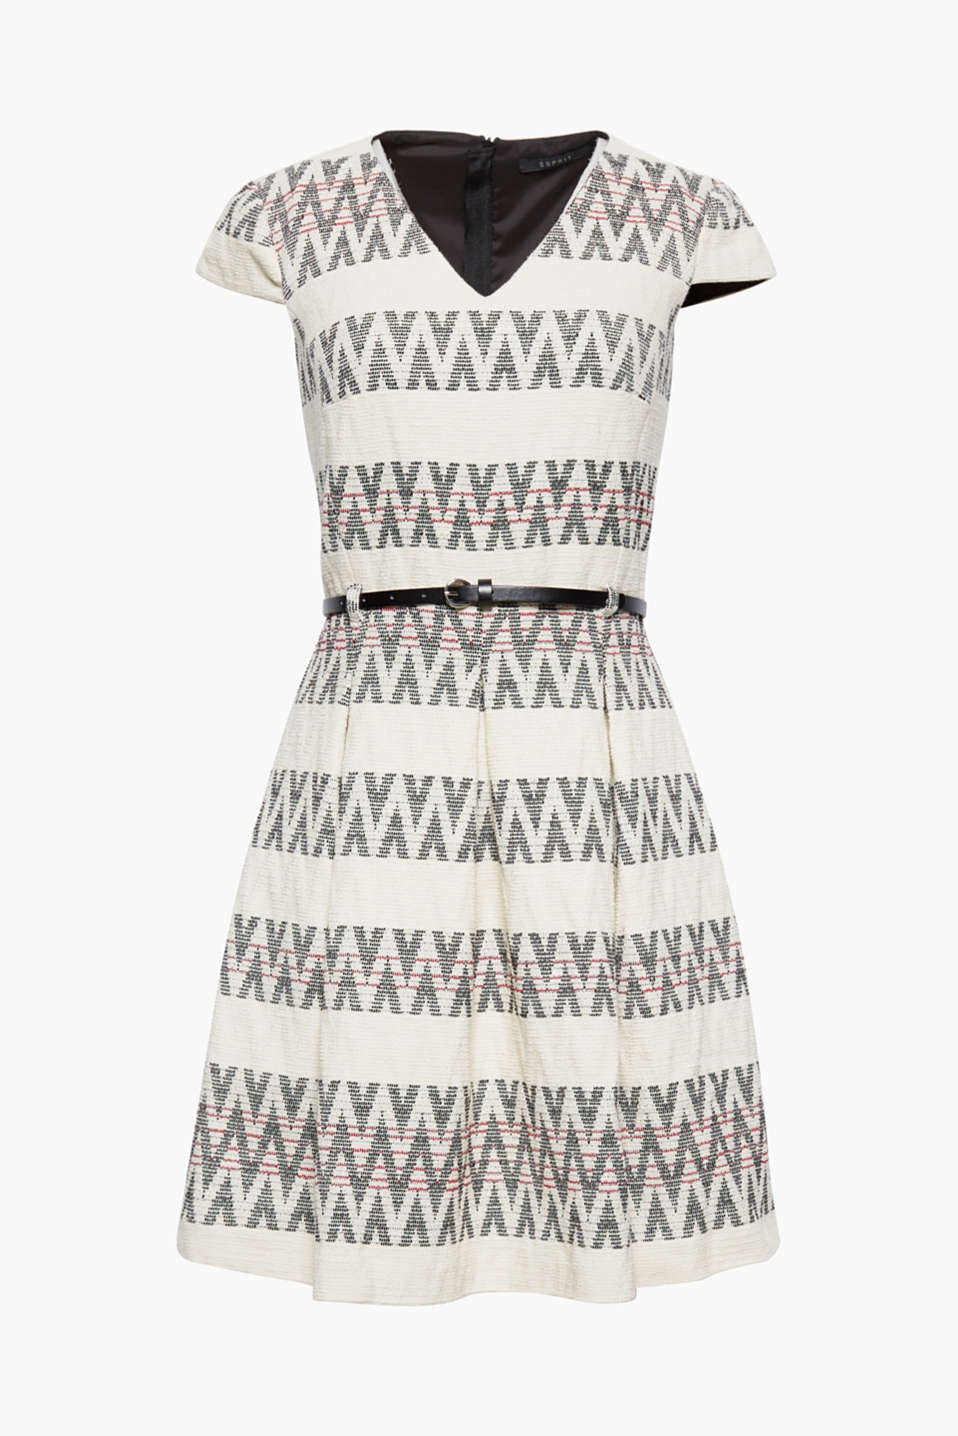 This dress in soft blended cotton with a zigzag pattern and a narrow belt can be worn as part of a chic or cheeky style!